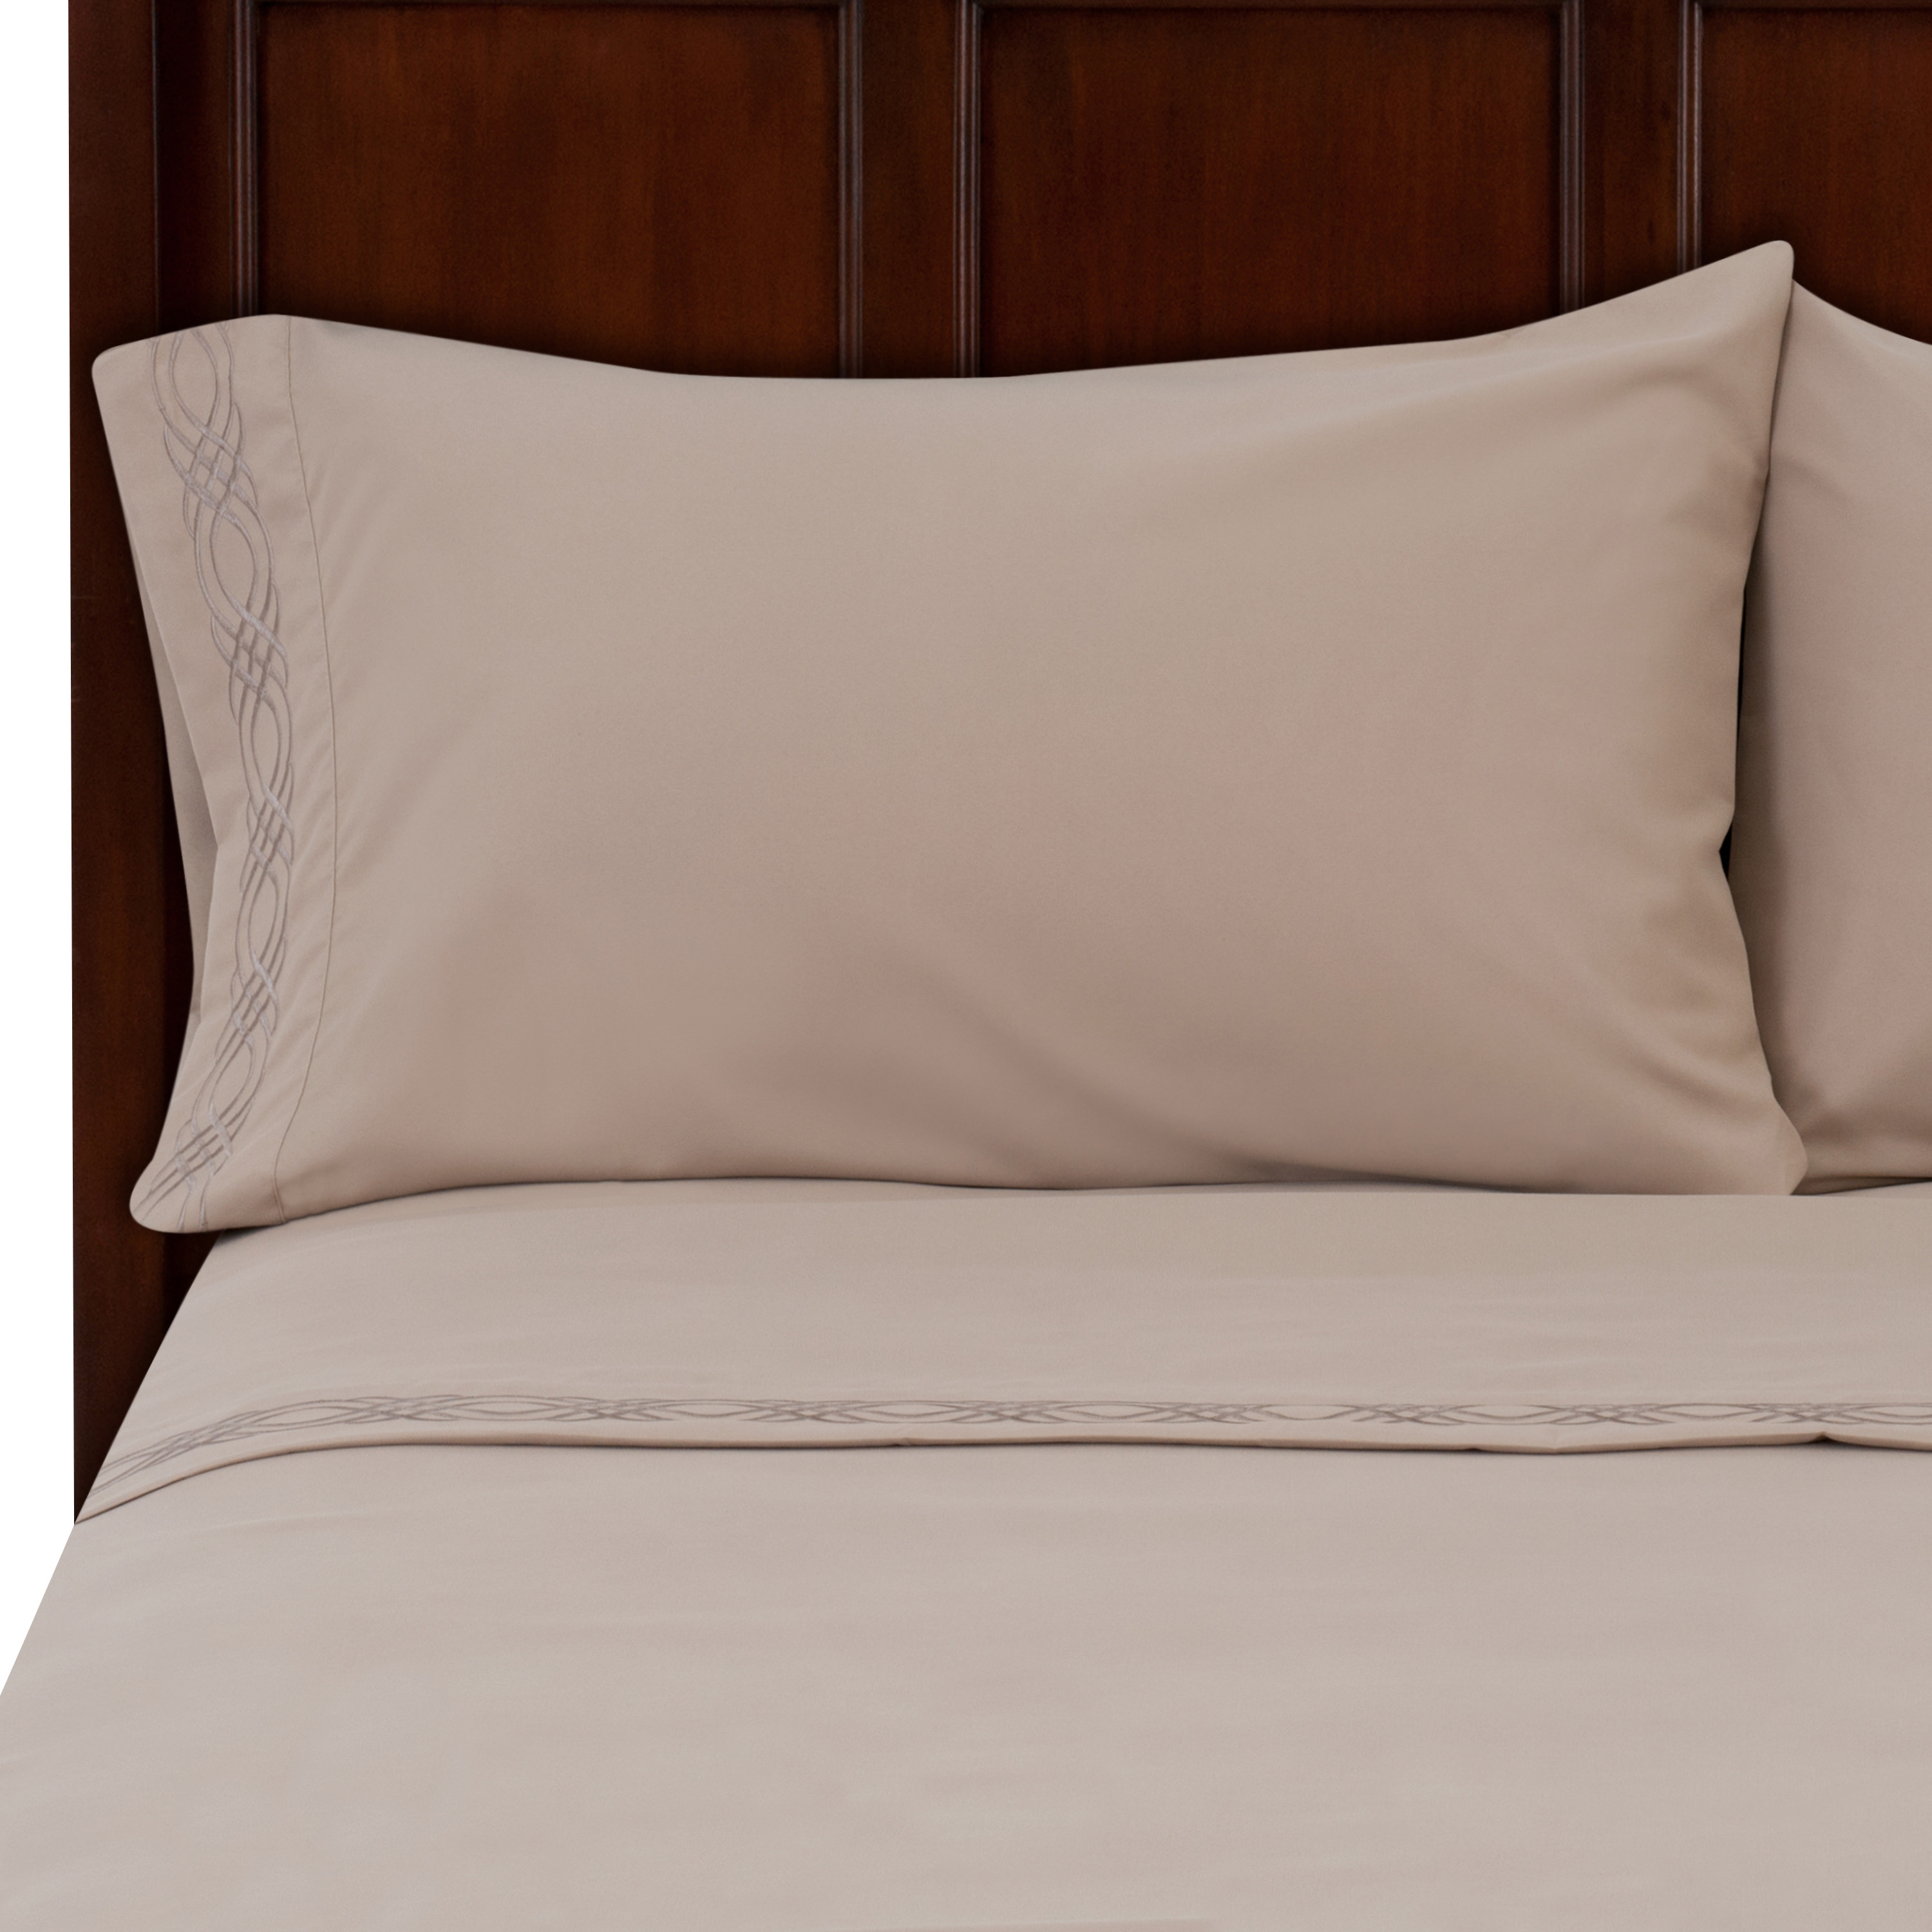 Details about  /Better Homes And Gardens Luxury Microfiber Embroidered Sheet Set Twin